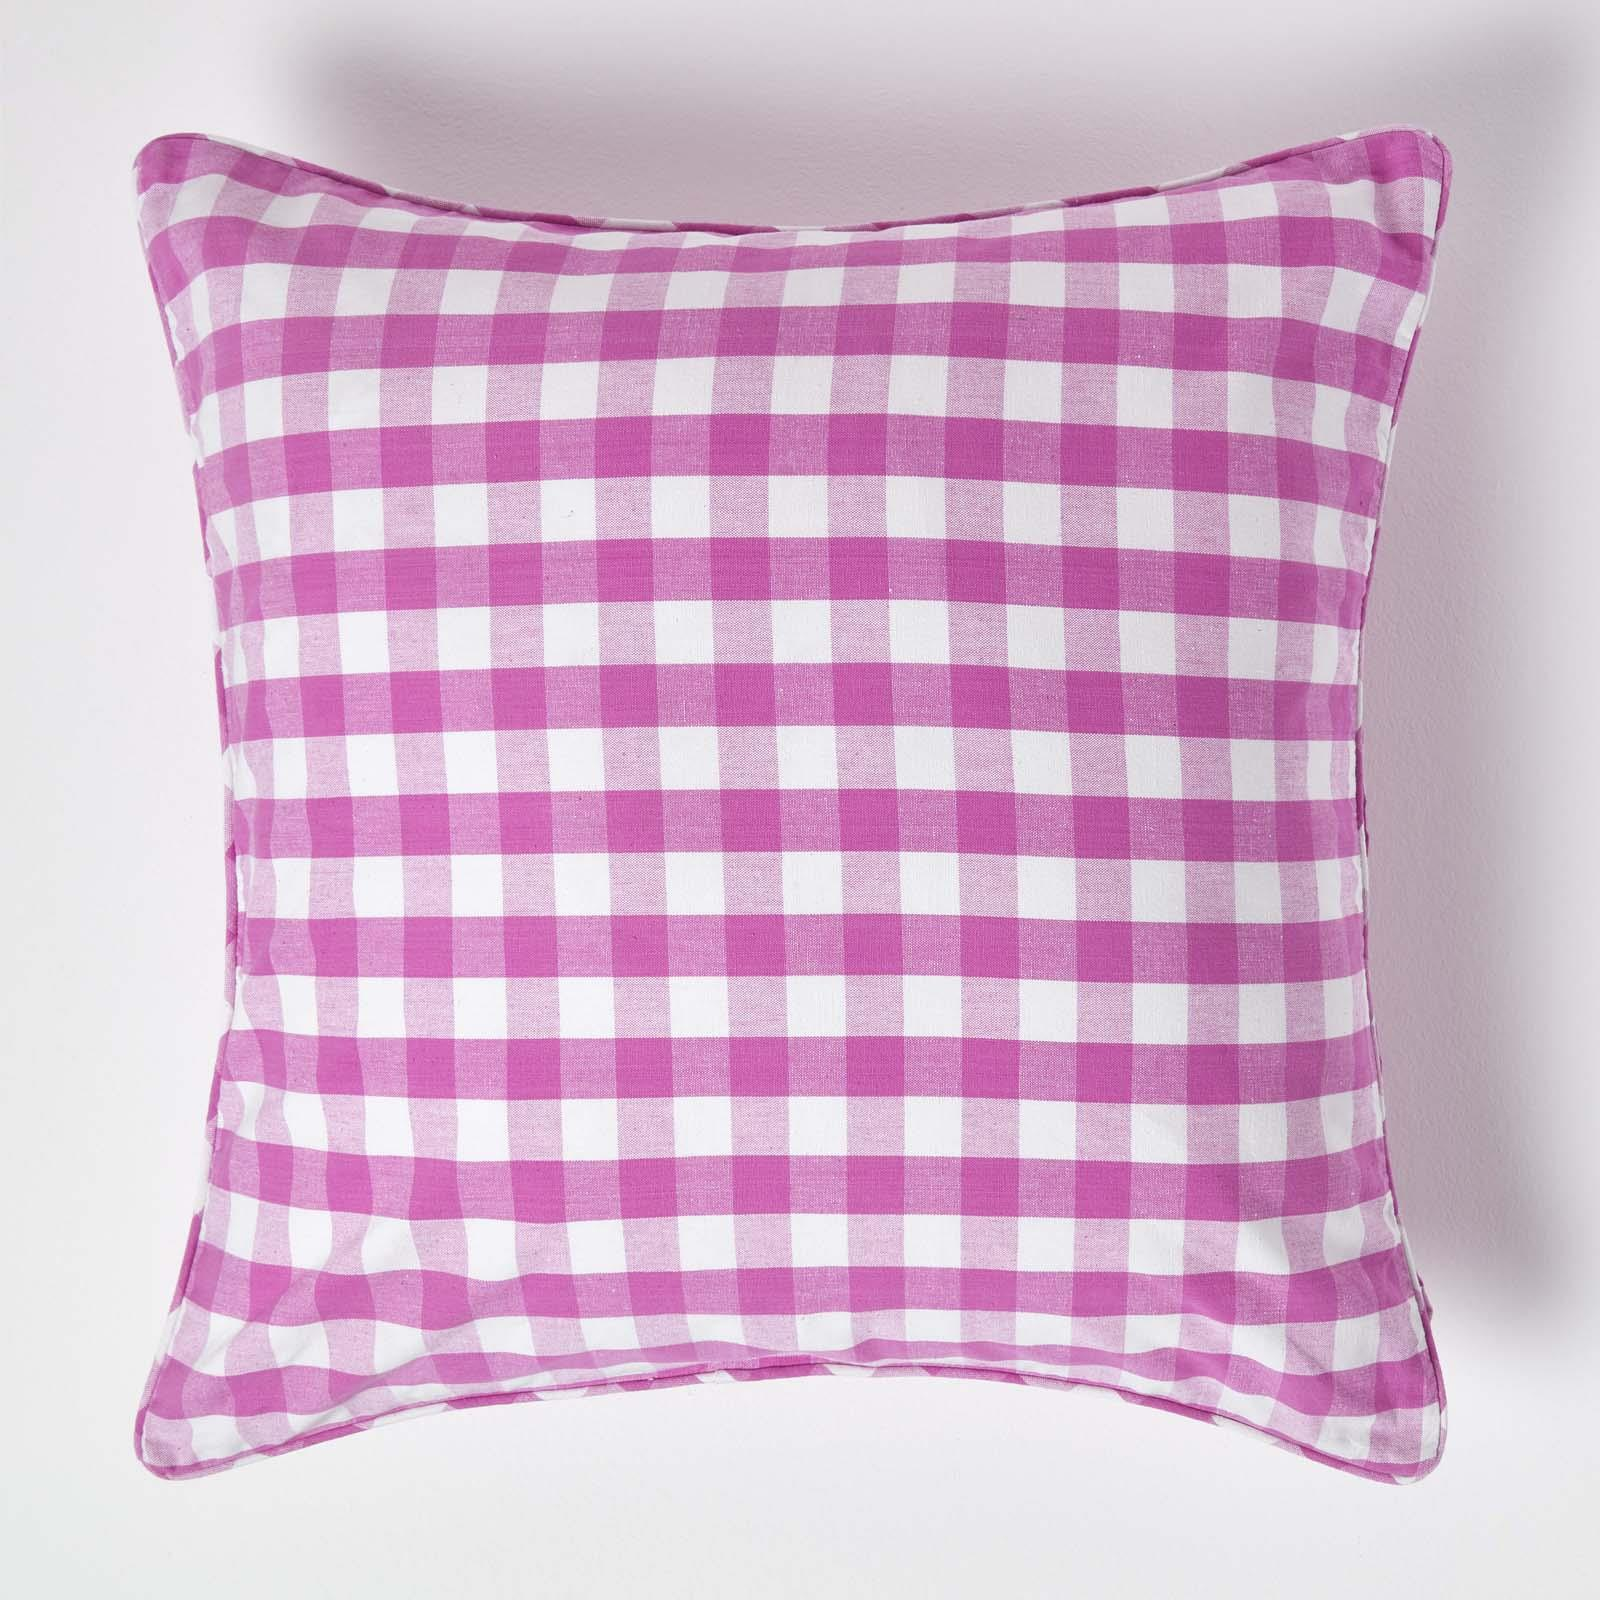 100 Cotton Block Check Cushion Cover For Home Decor Square Rectangular Ebay